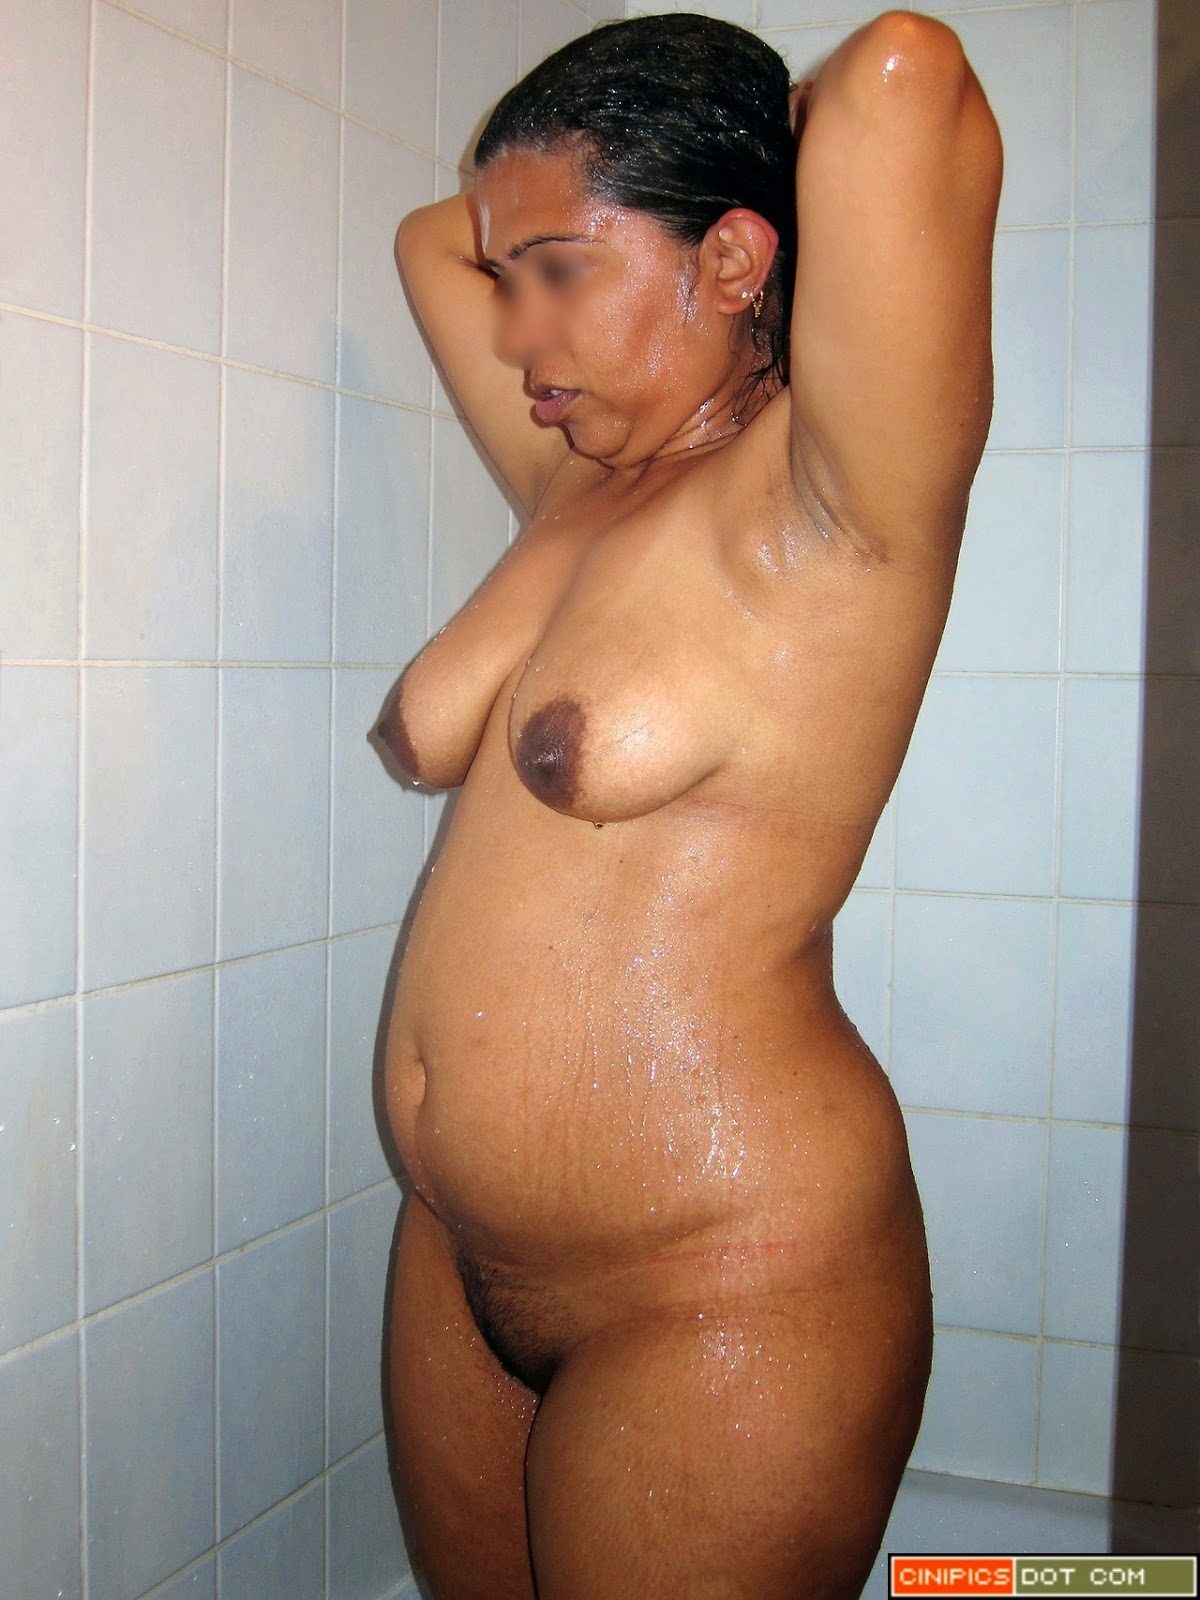 Apologise, but, hot indian aunty photos